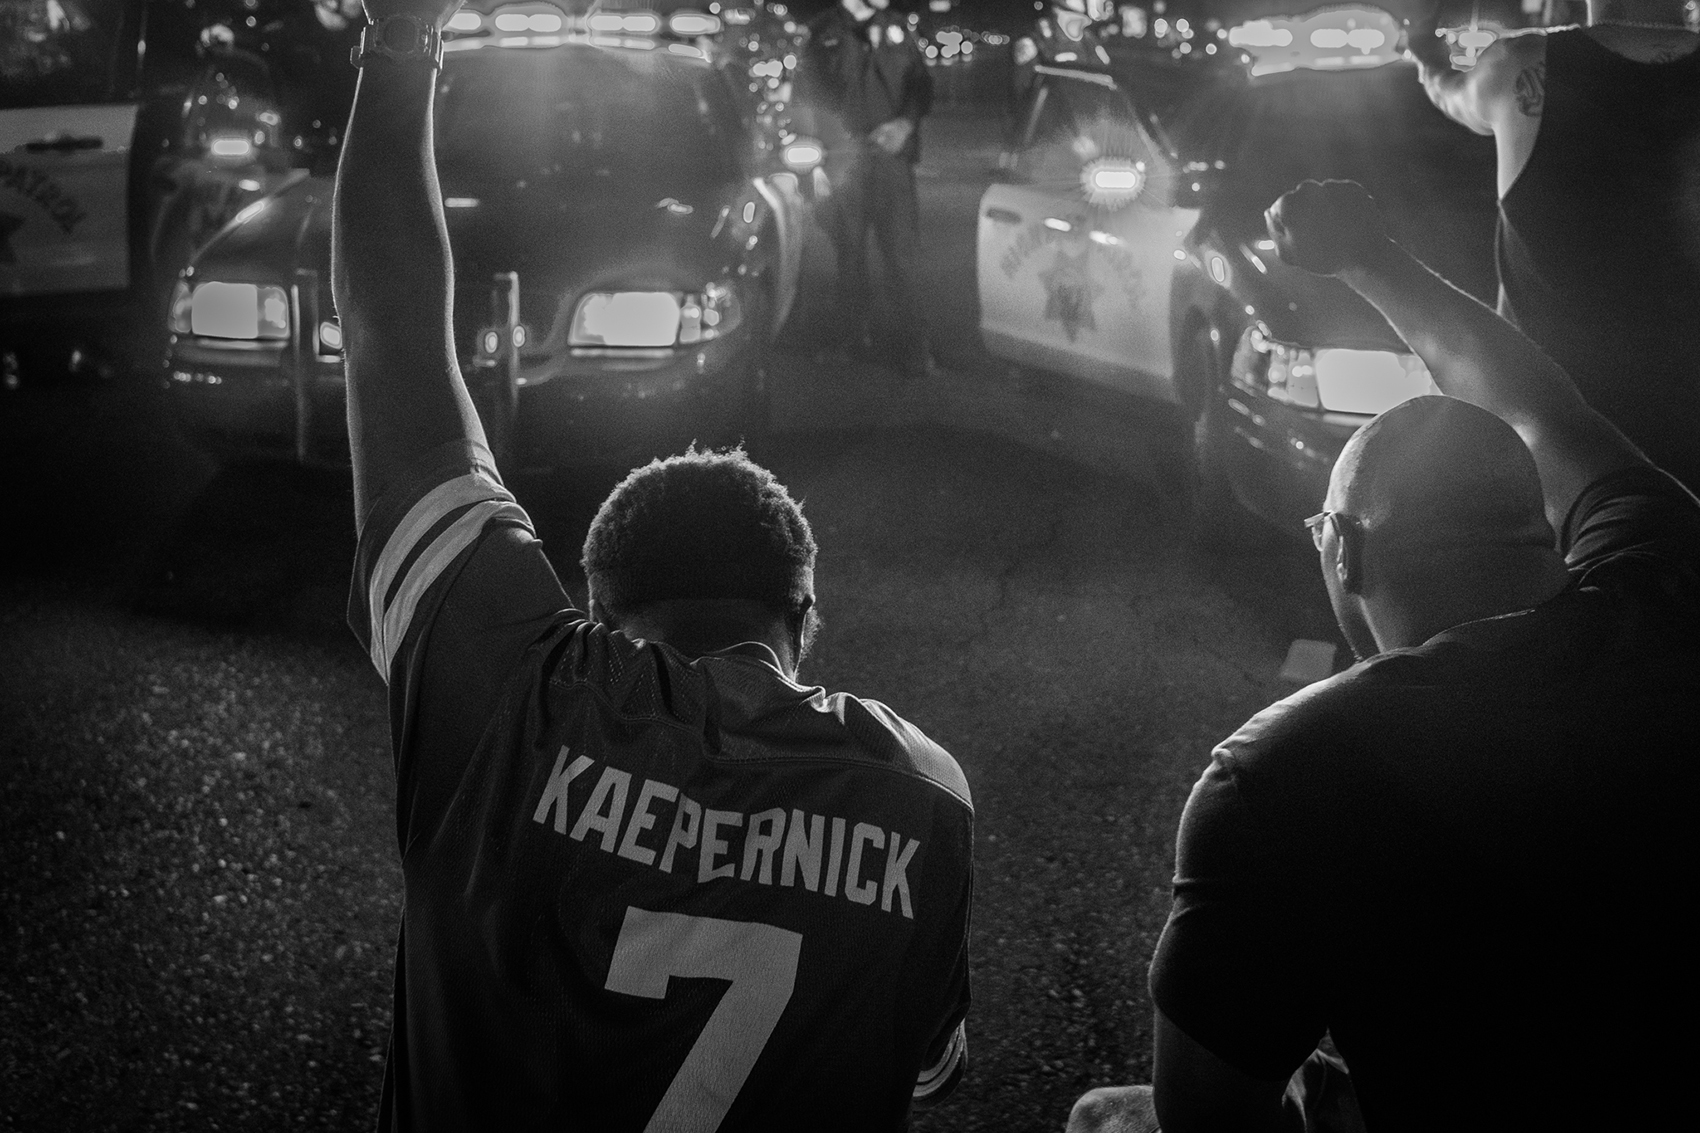 two men, one with a Kaepernick jersey, kneel in front of police cars